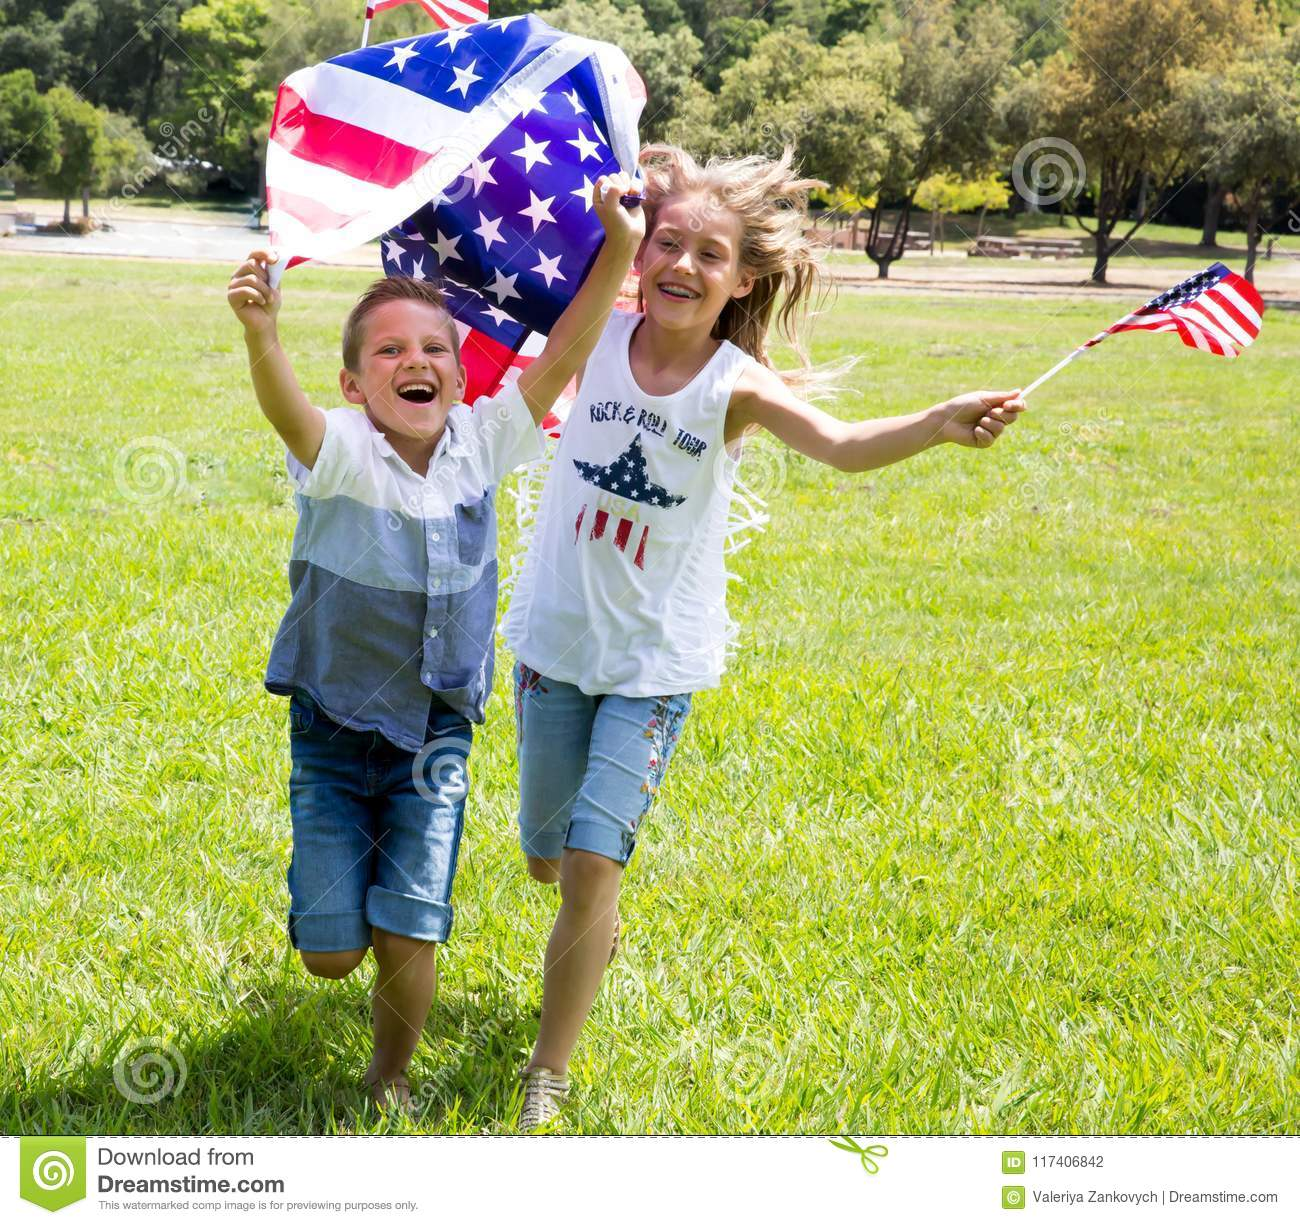 Adorable little girl and boy run on bright green grass holding american flag outdoors on Independence Day holiday